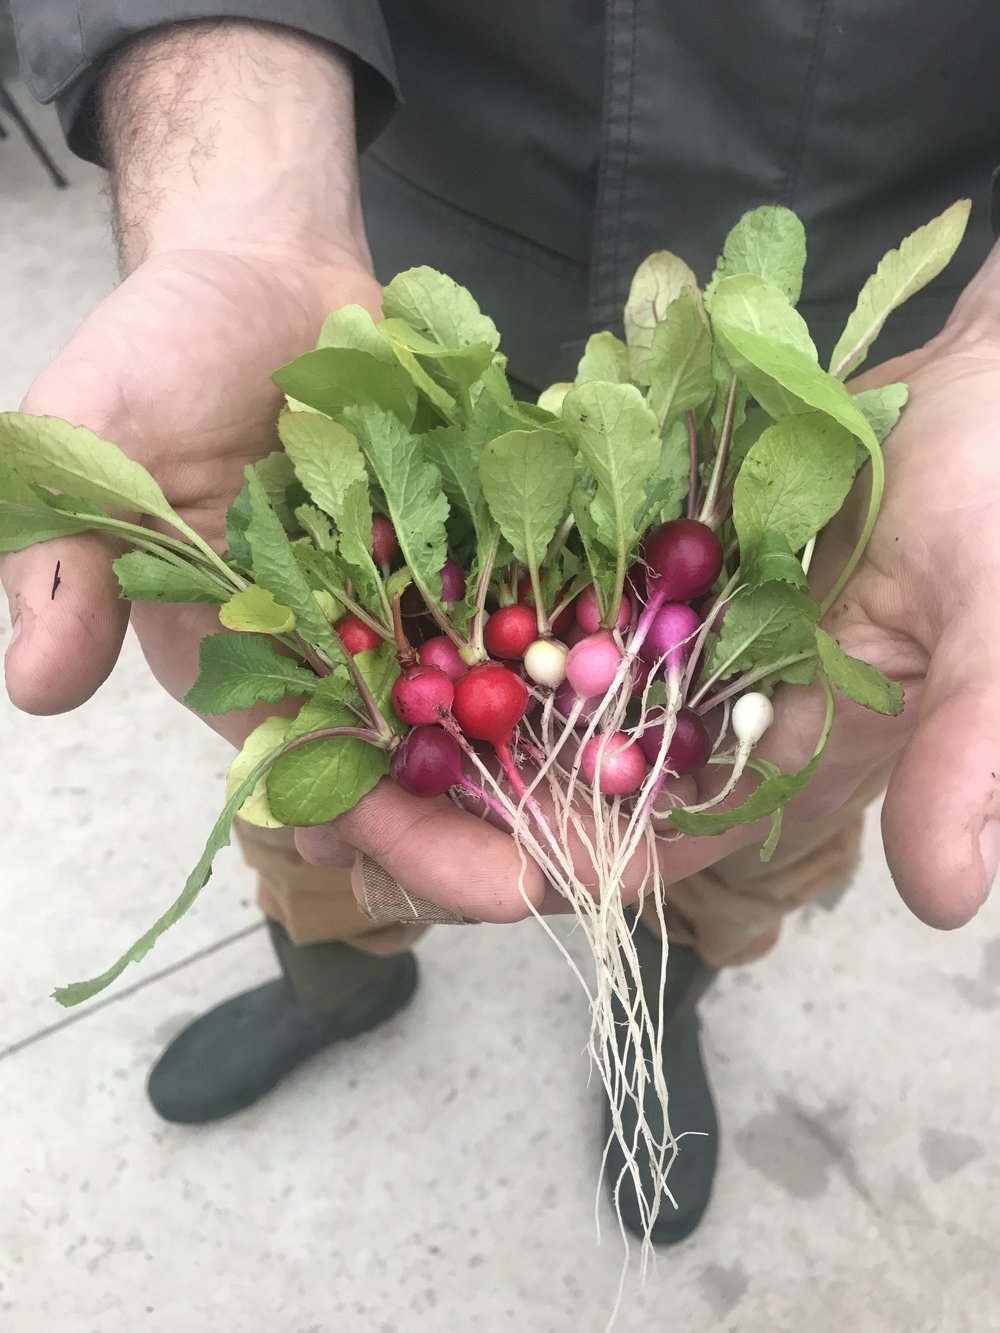 The most adorable teensy tiny radishes. Normal size radishes also available at market...